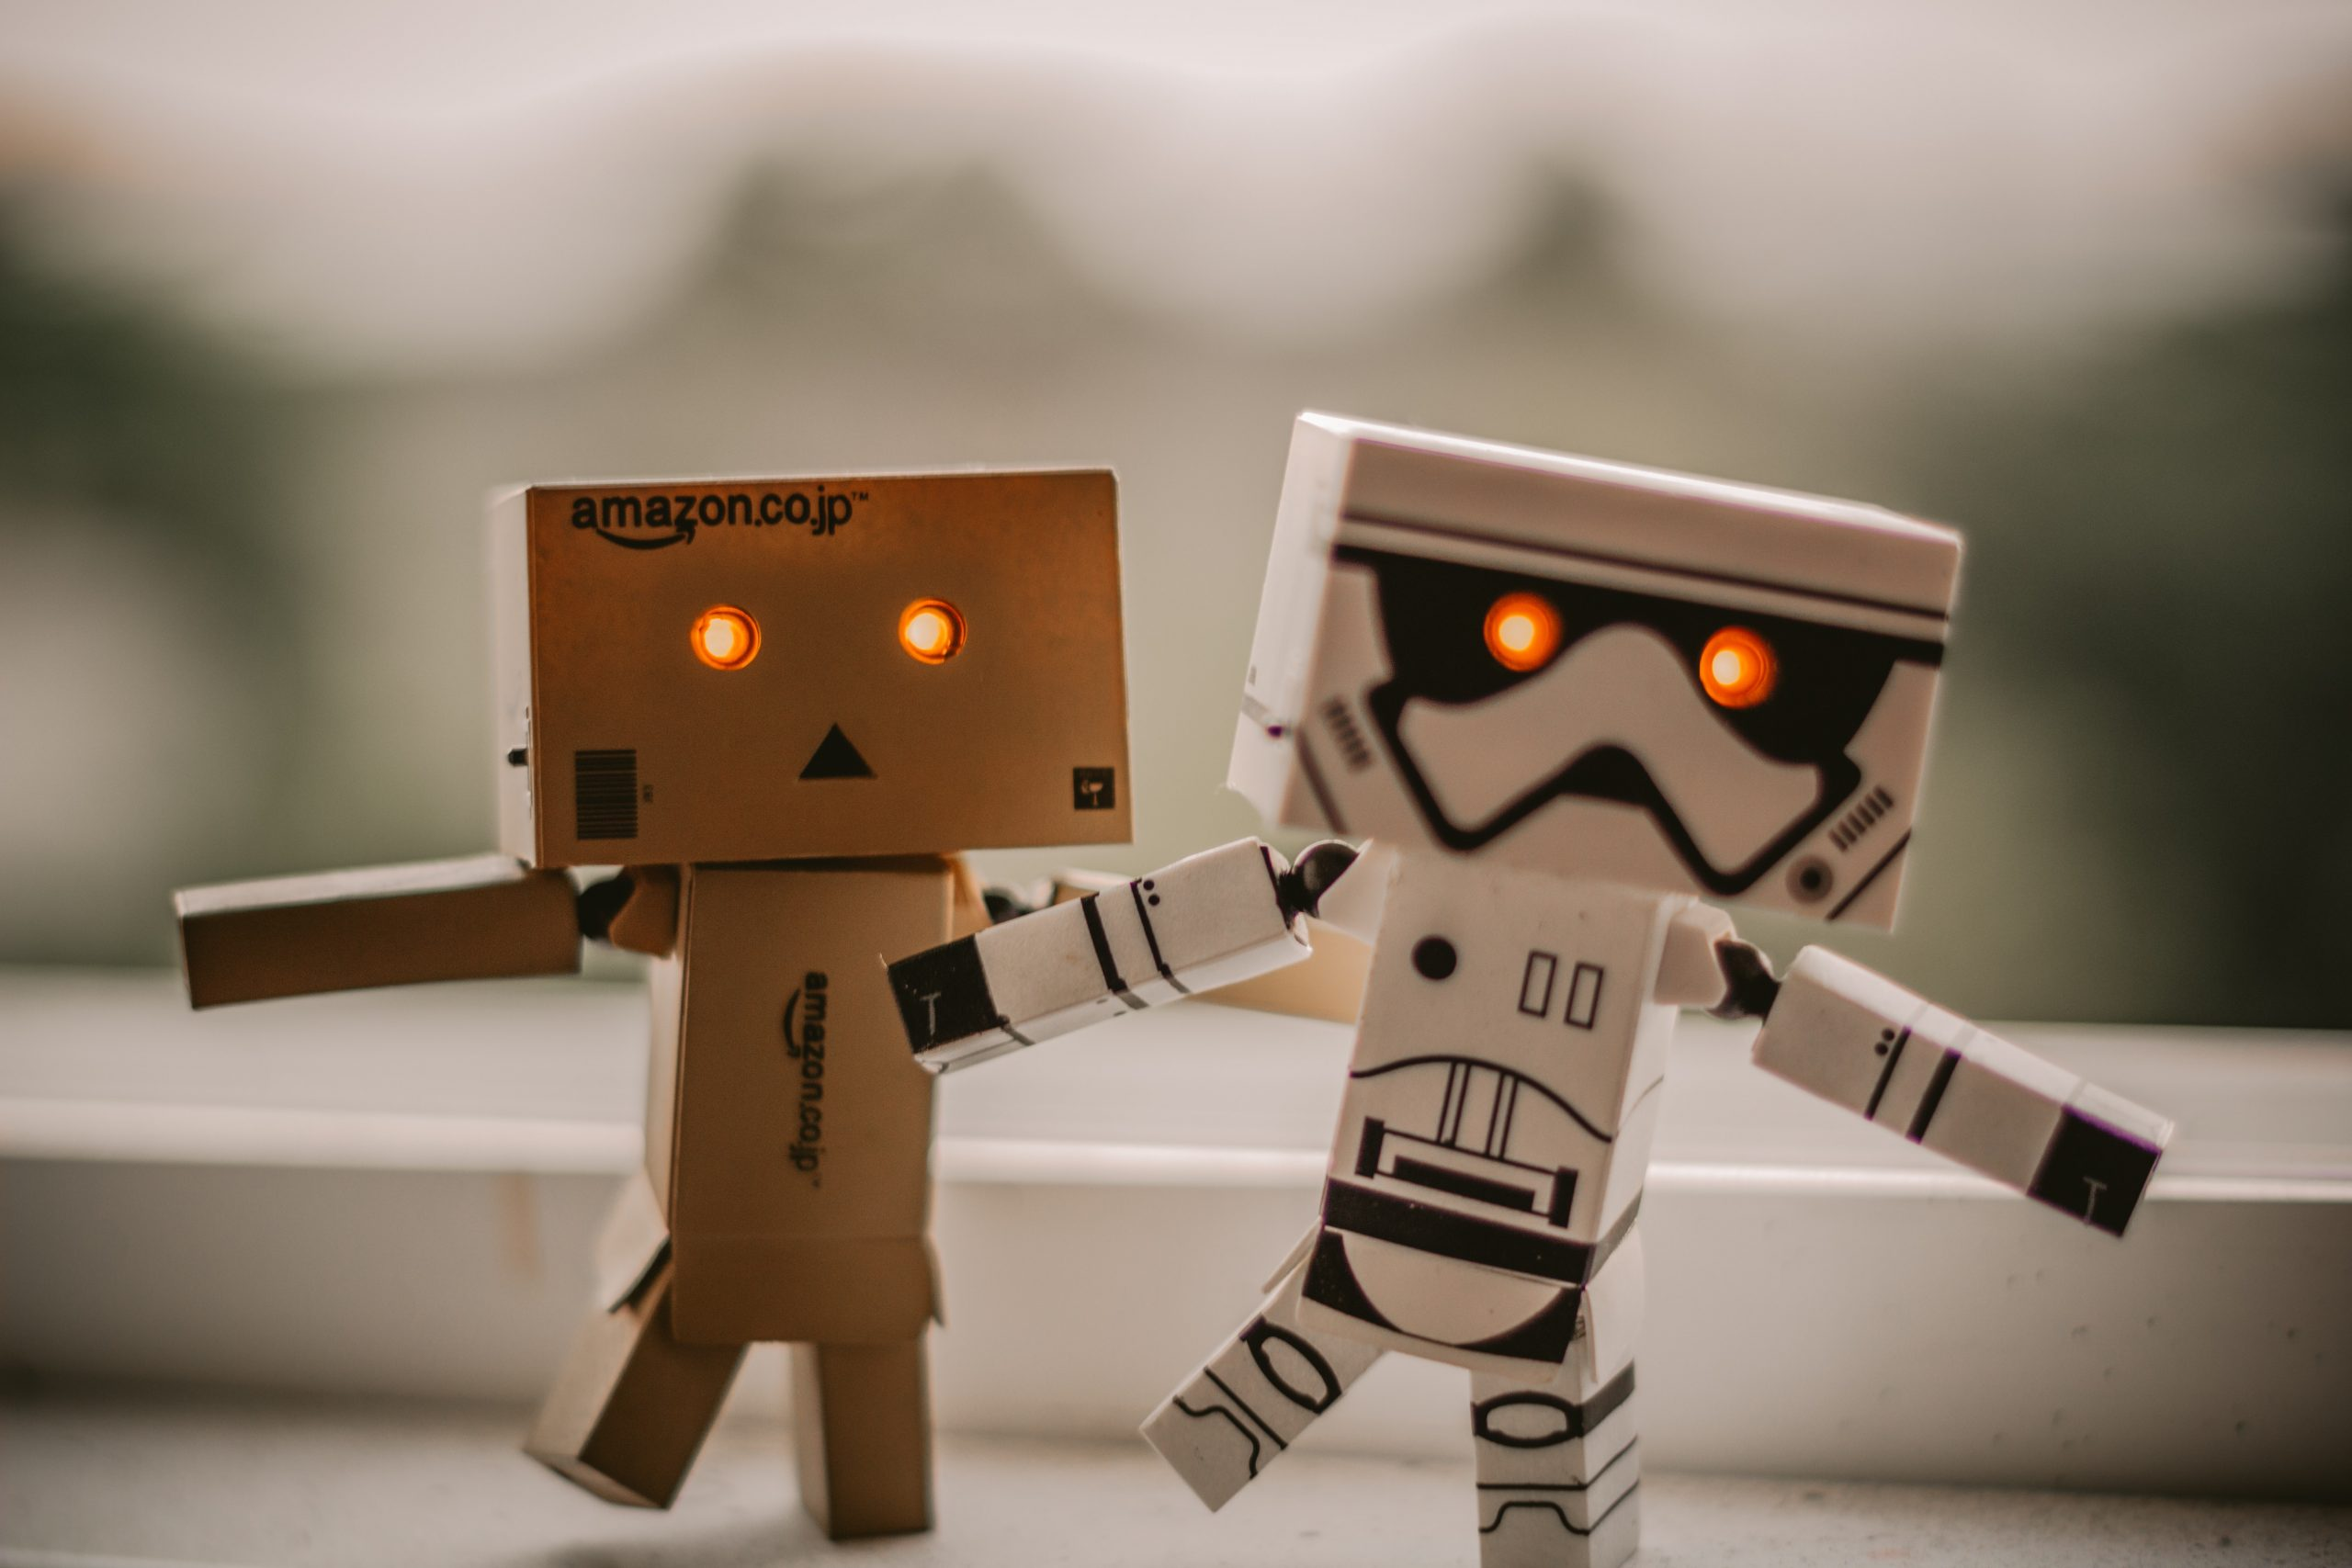 029 – You Are Not a Robot